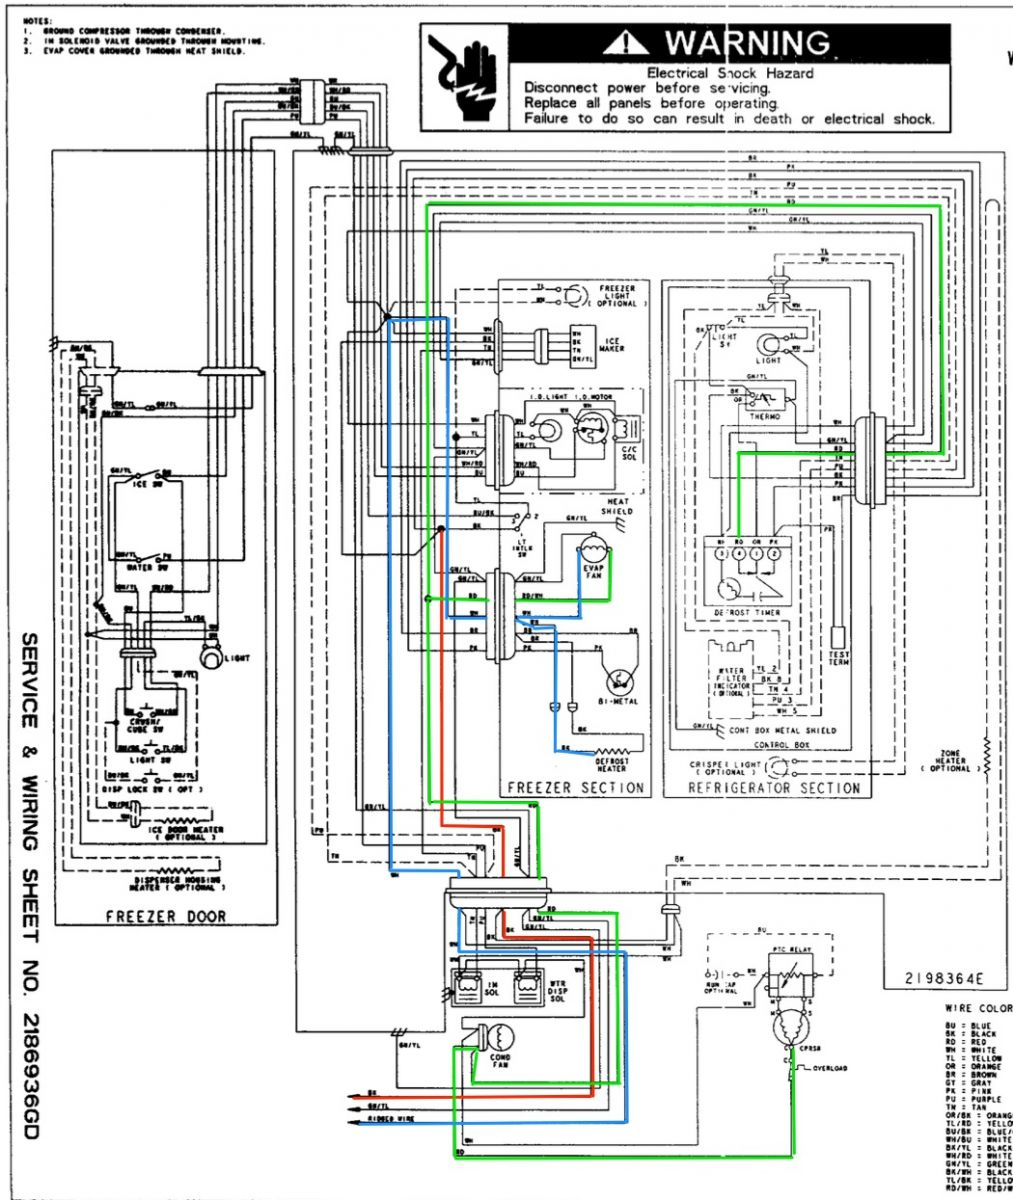 whirlpool ed25rfxfw01 refrigerator wiring diagram the rh appliantology org wiring diagram for whirlpool 6x5f-txvy09 wiring diagram for whirlpool #et22pmxan00